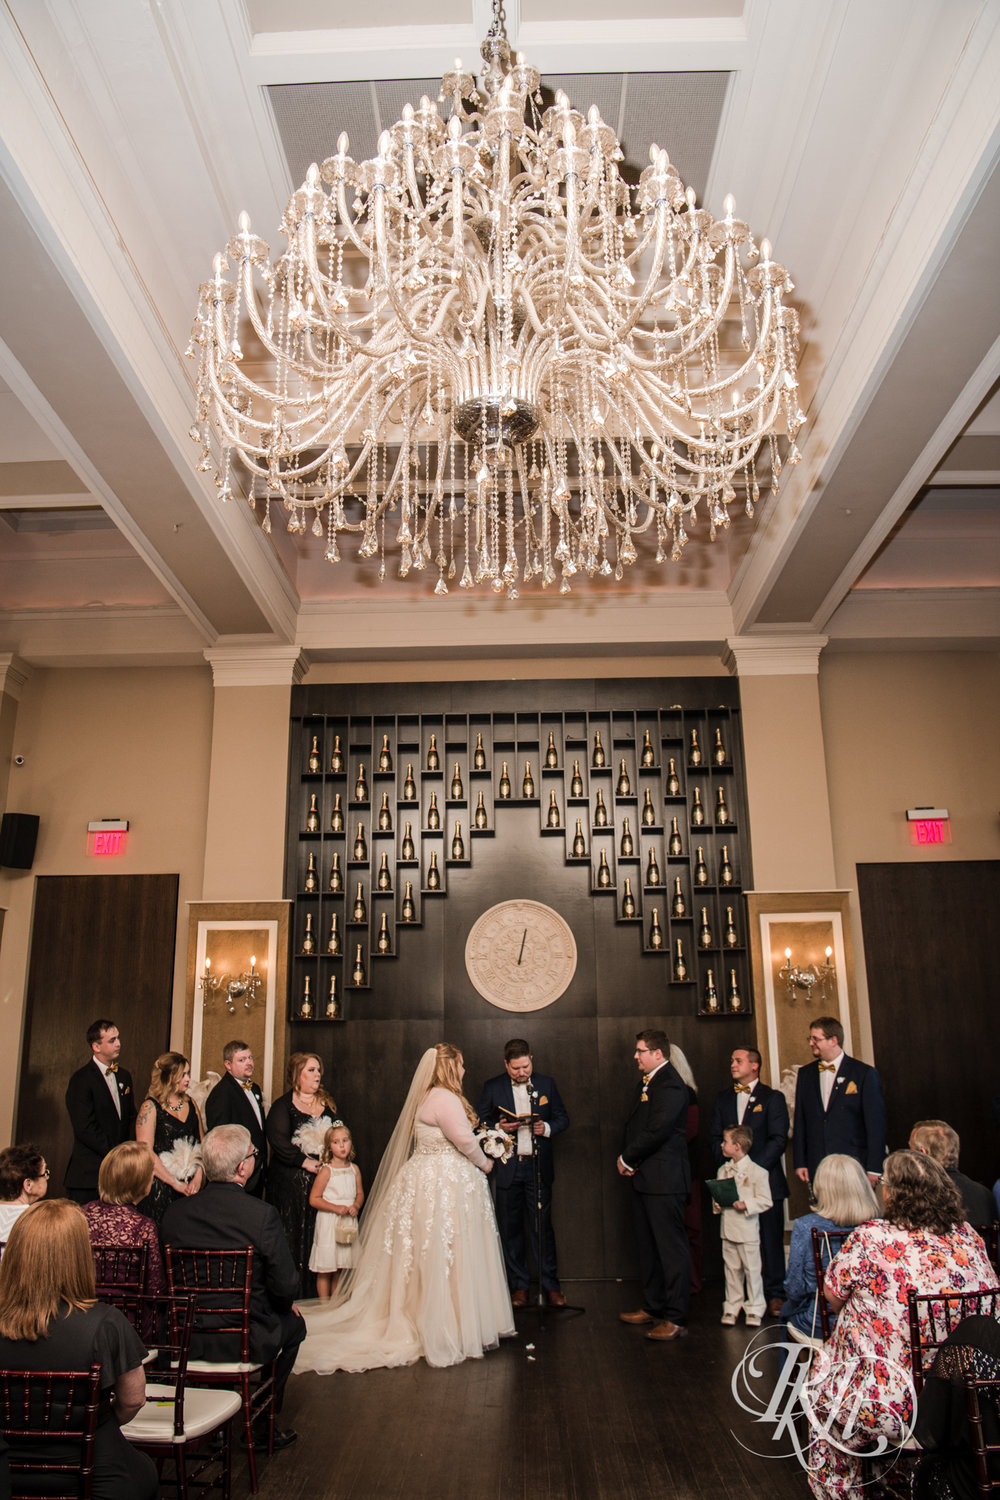 Cameron & Jesse - Minnesota Wedding Photography - Mansion at Uptown - RKH Images - Blog (29 of 65).jpg